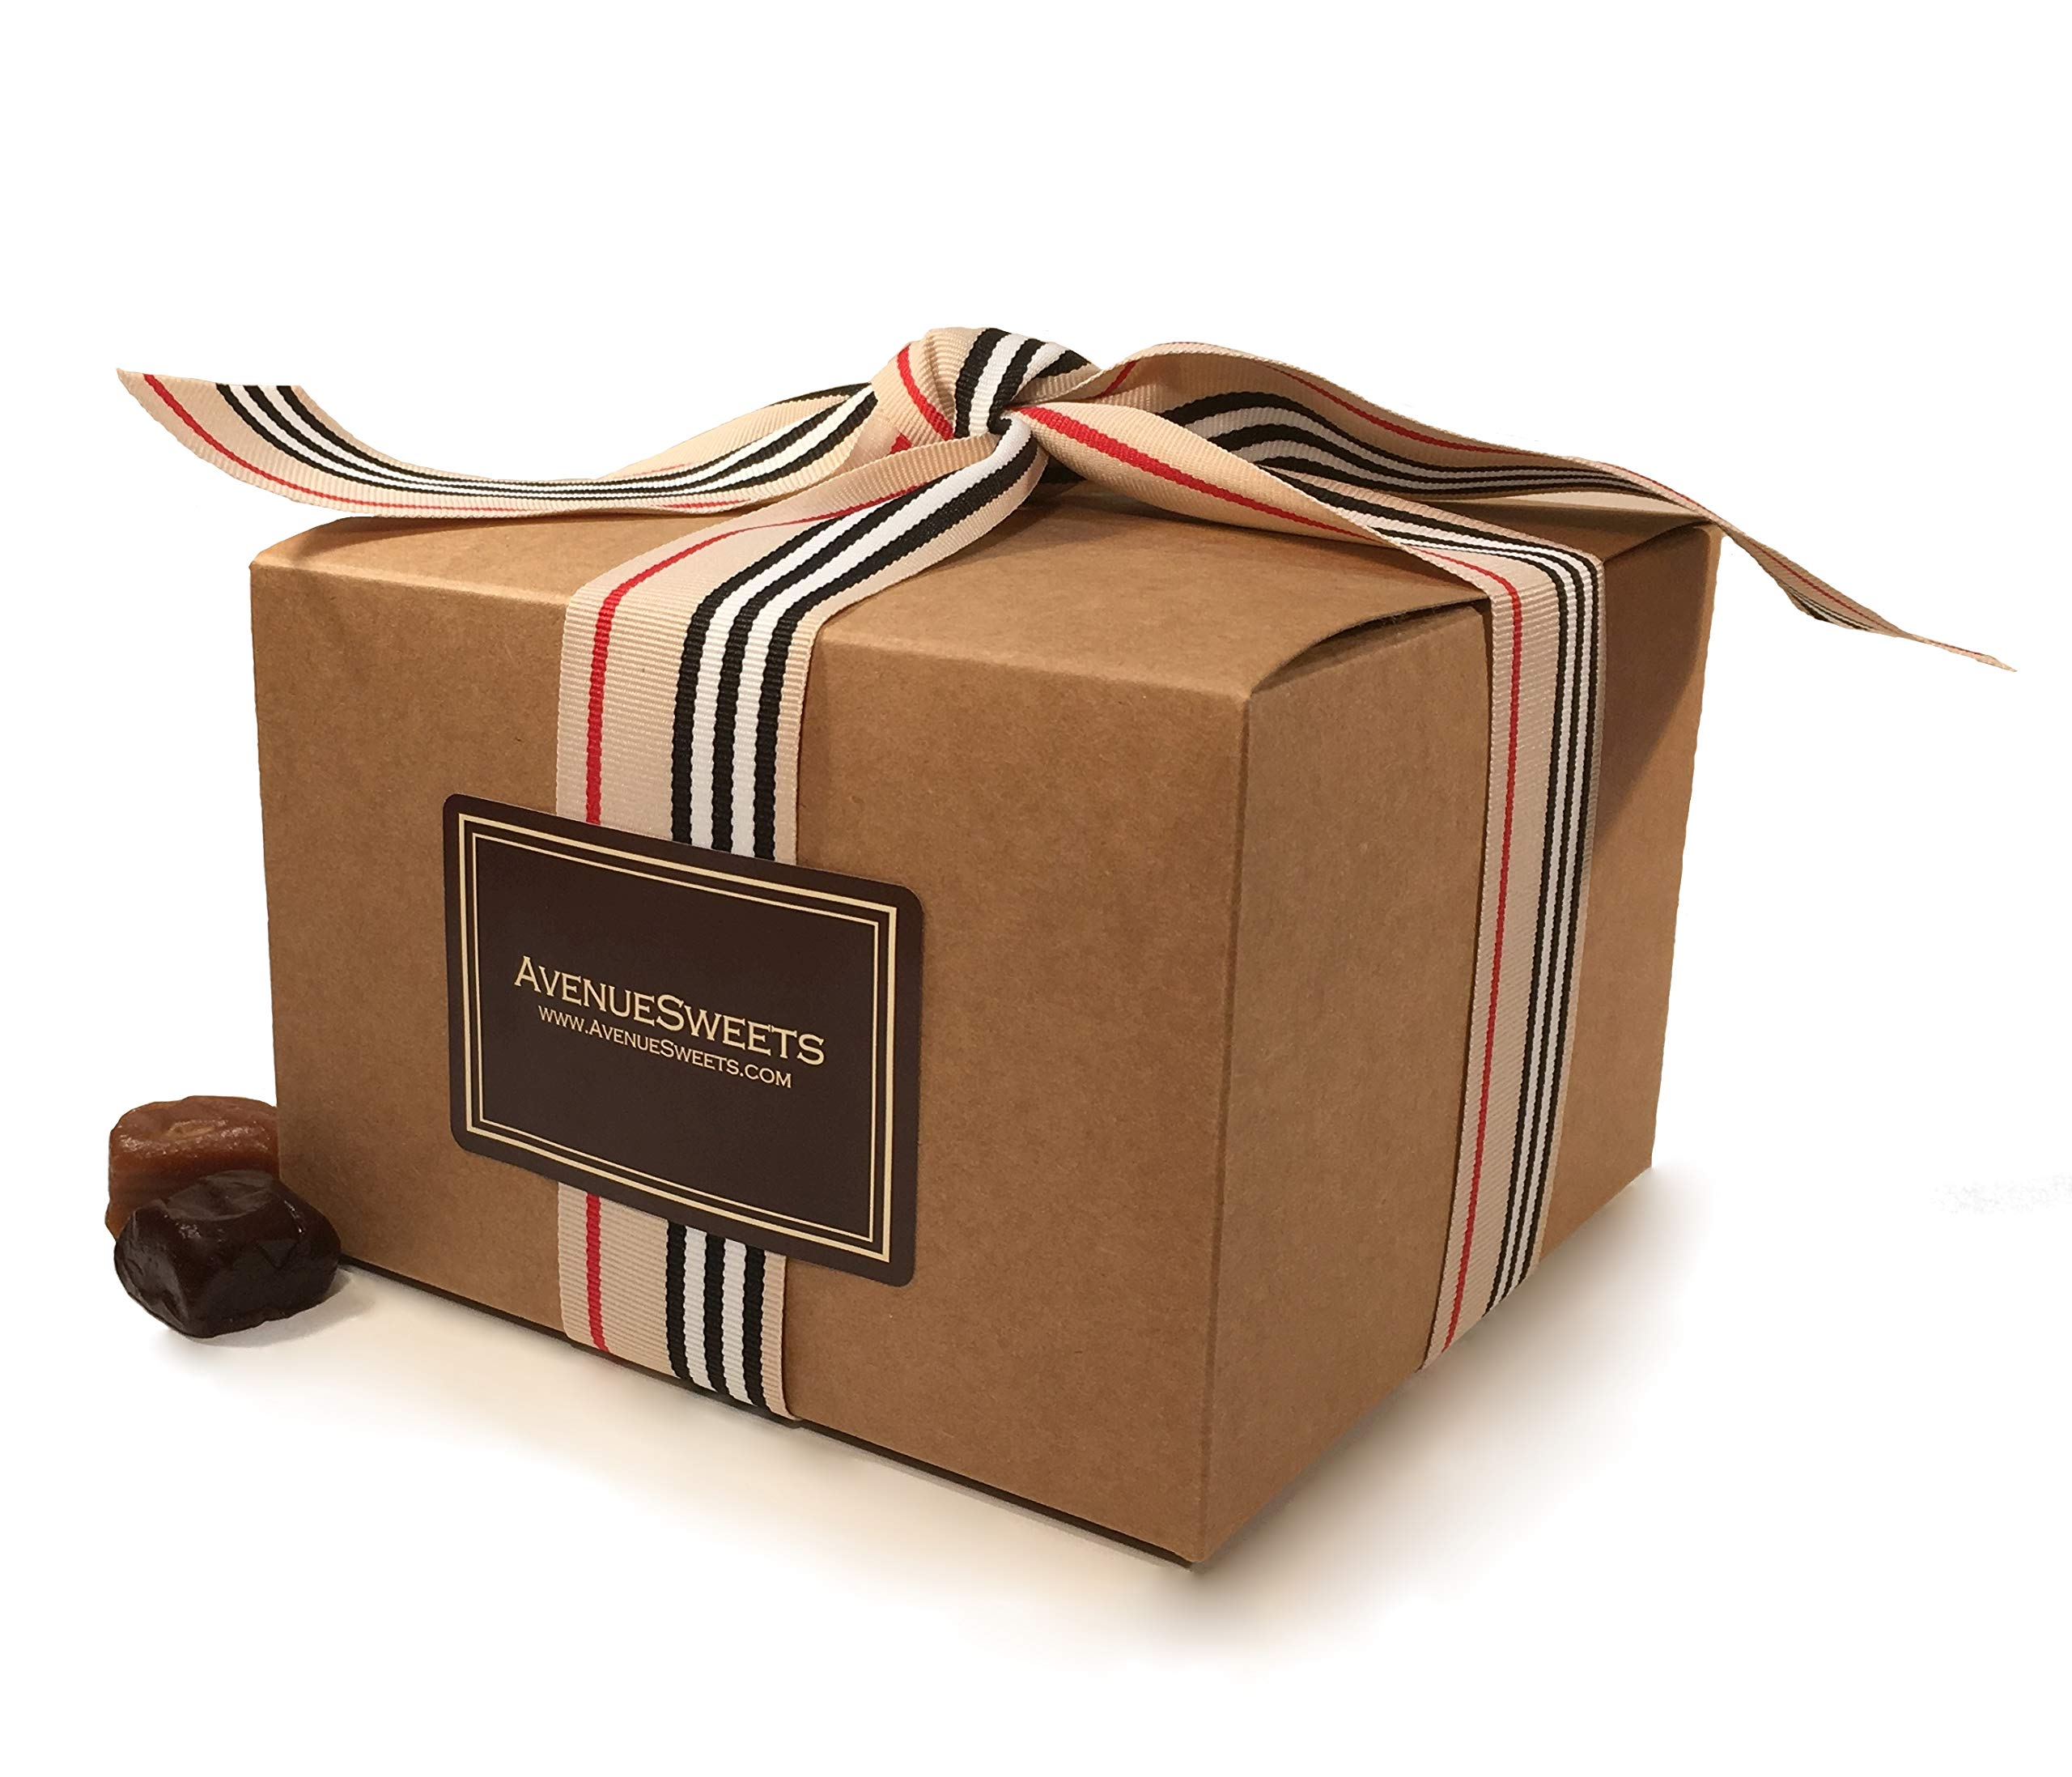 AvenueSweets - Handcrafted Individually Wrapped Soft Caramels - Craft Paper 1.5 lb Gift Box - Customize Your Flavors by AvenueSweets